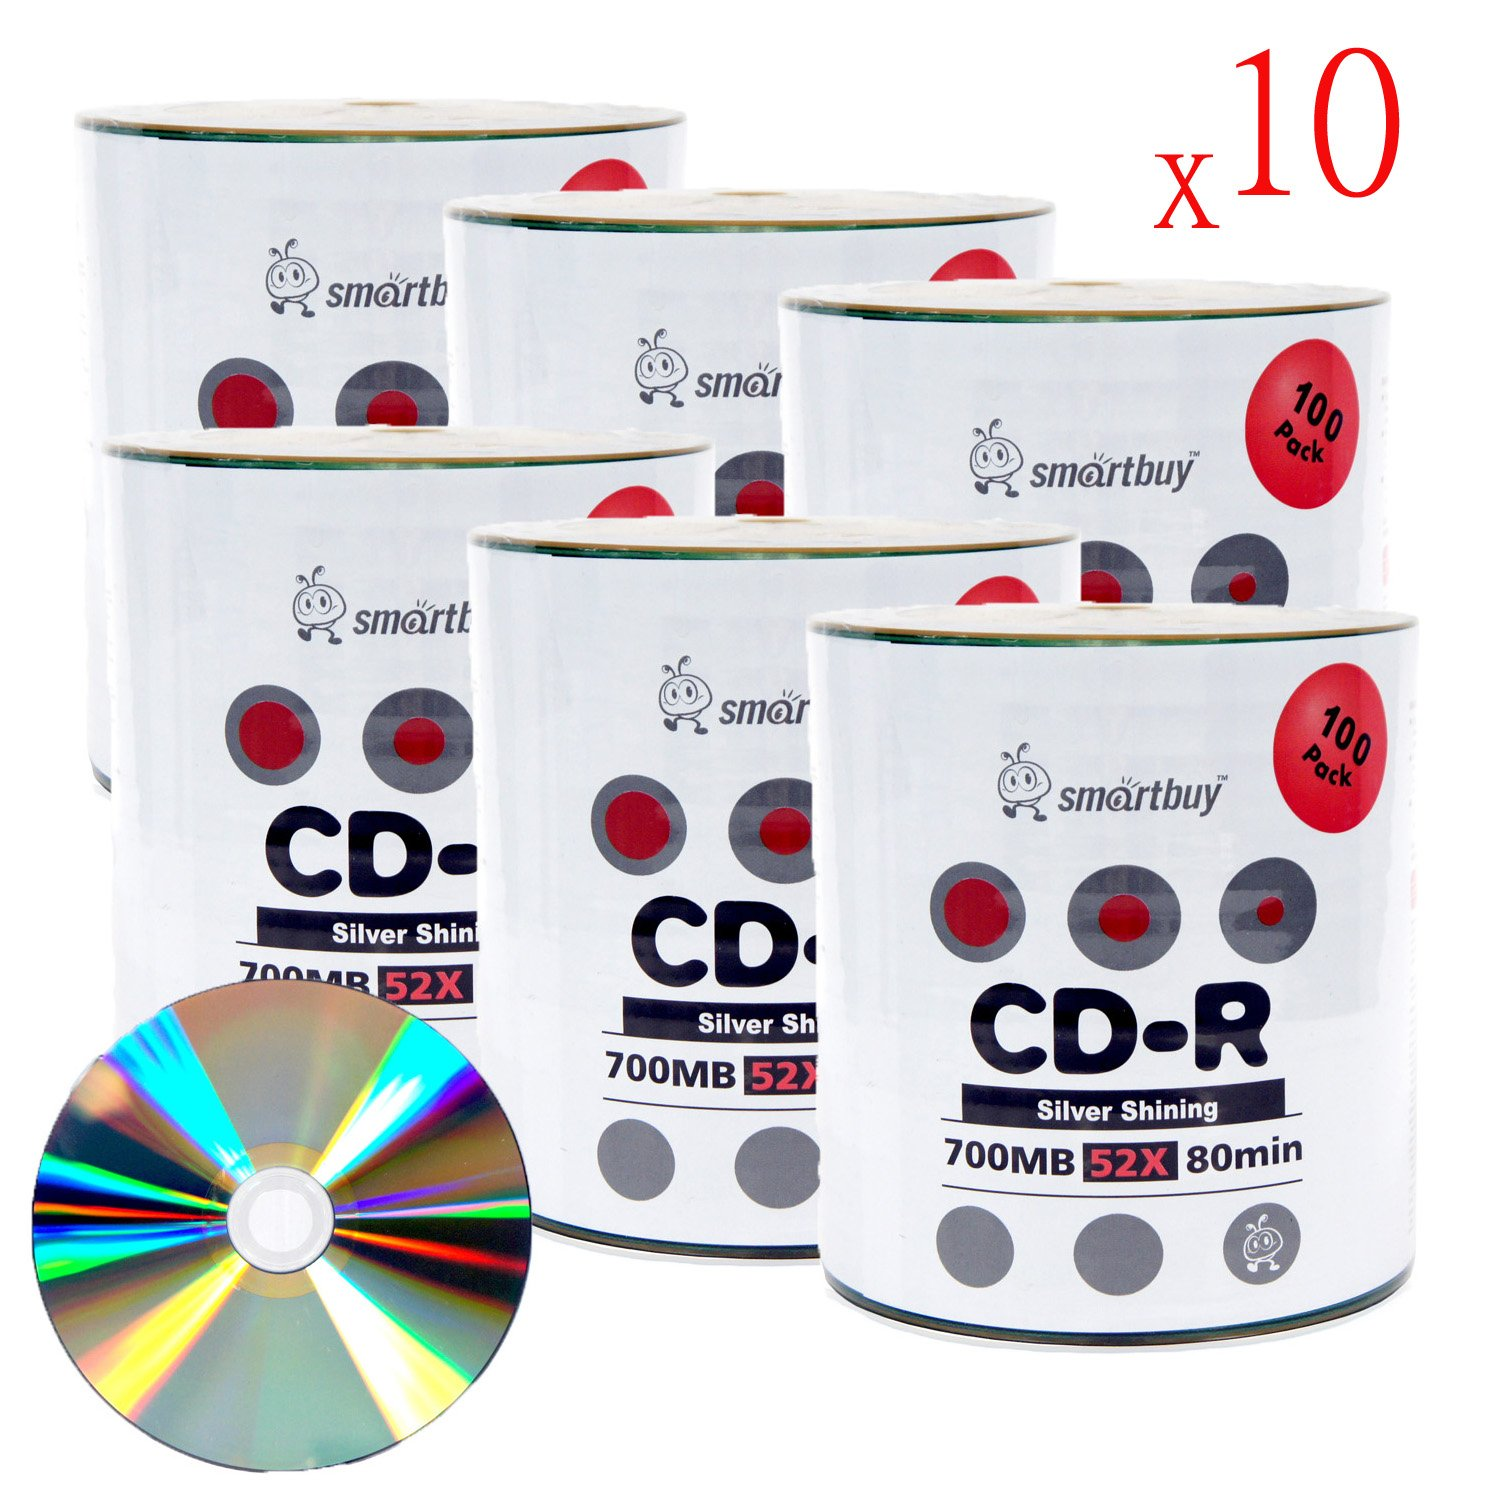 Smart Buy Shiny Silver Top CD-R 6000 Pack 700mb 52x Blank Recordable Discs, 6000 Disc, 6000pk